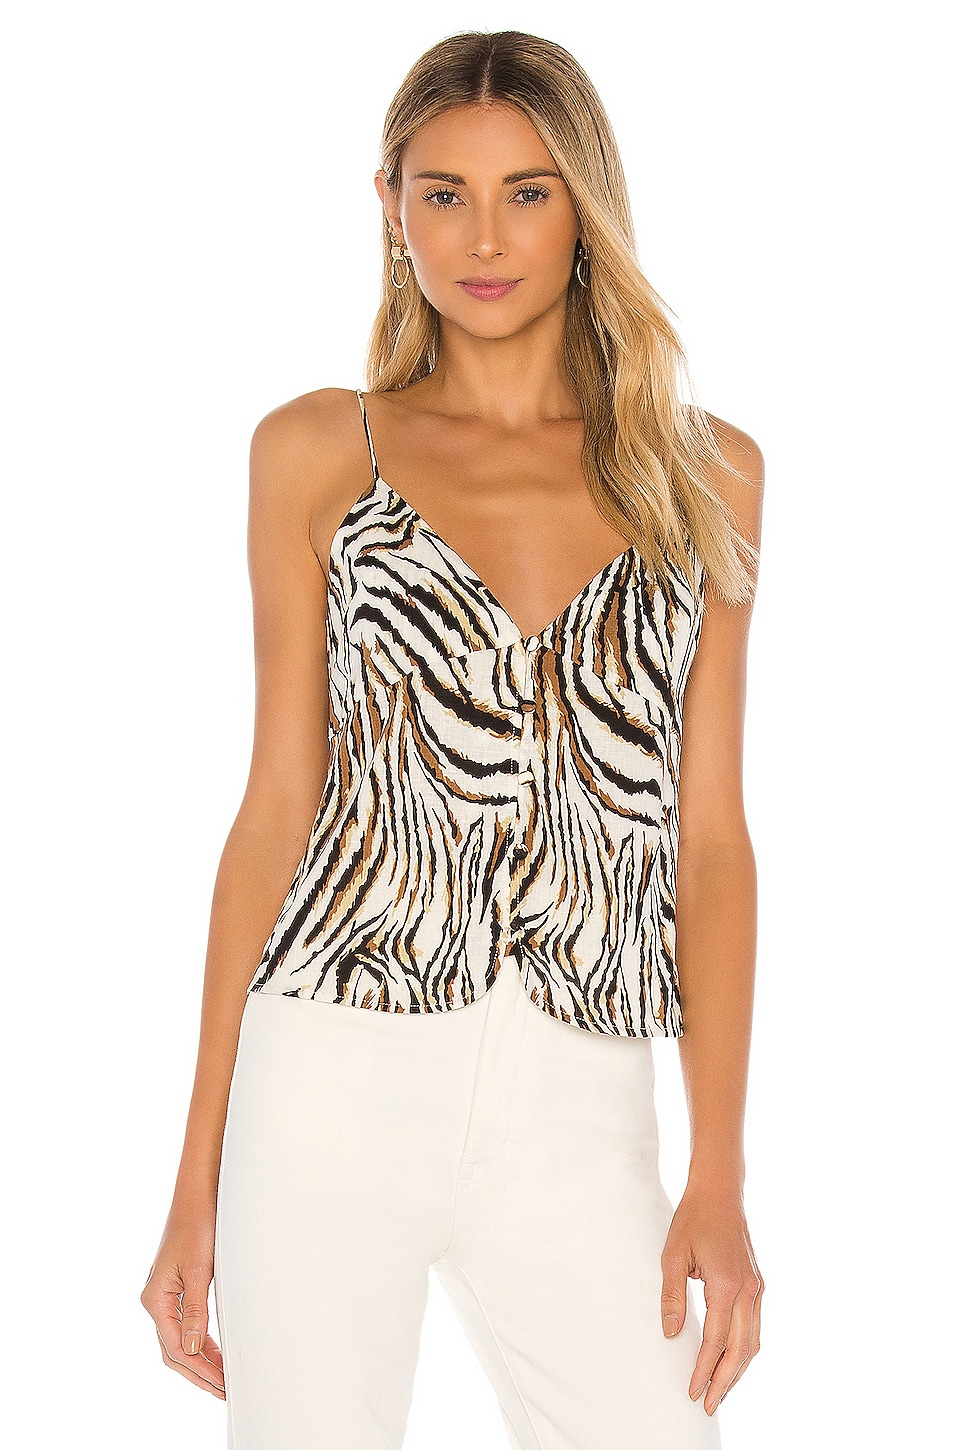 L'Academie The Pierette Cami in White Tiger